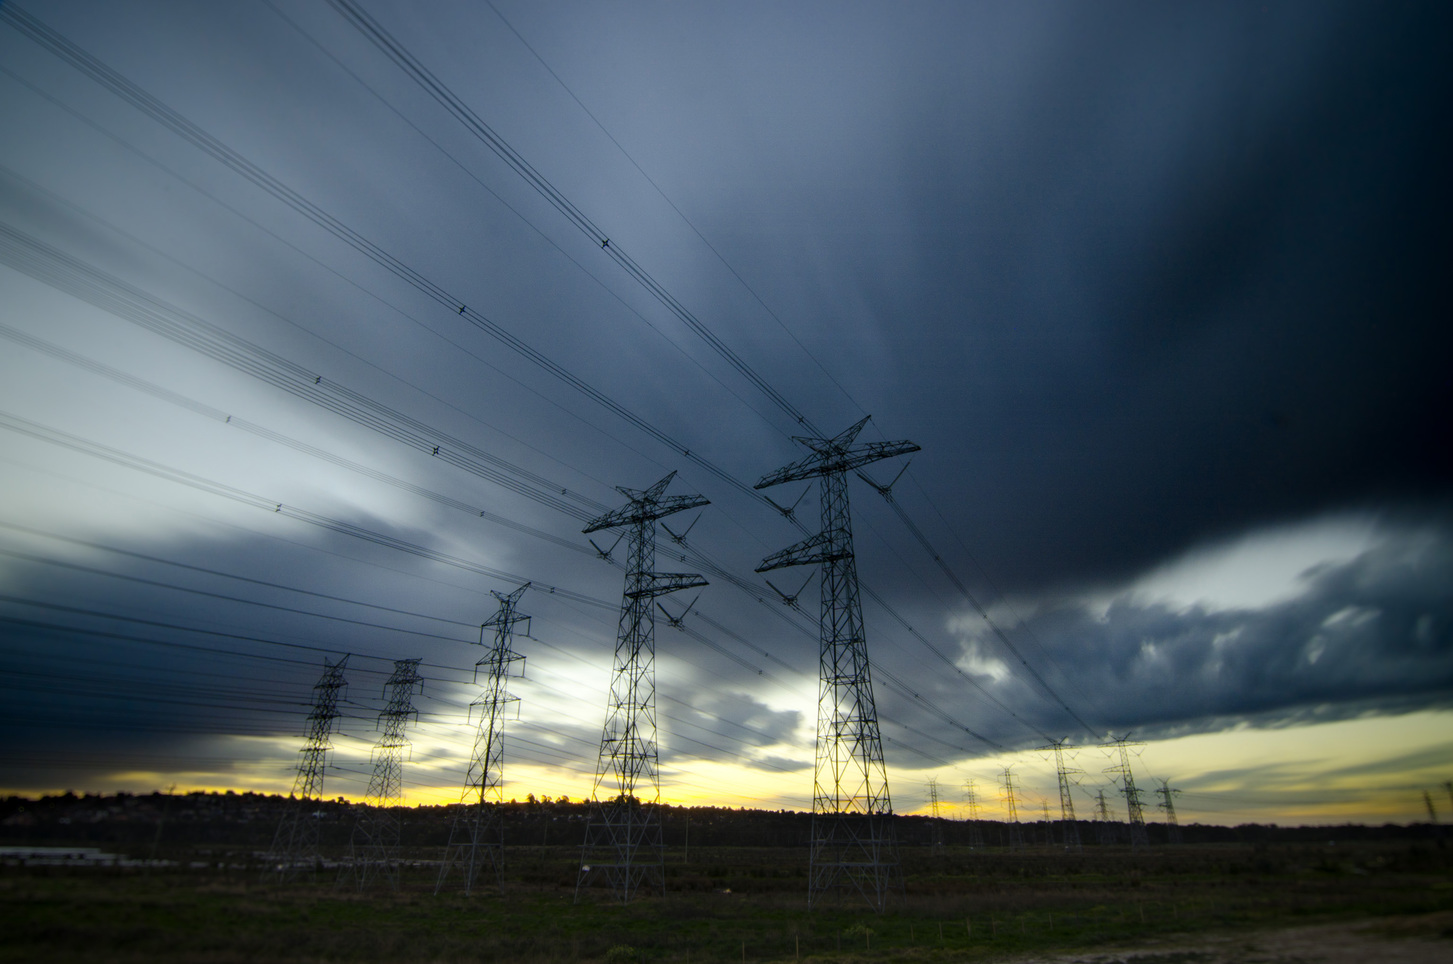 Showing their age: Upgrading transmission lines could bring solar and wind-generated power from remote parts of the country to where the people are, which would help make the grid cleaner and potentially lower prices. indigoskies/flickr, CC BY-NC-ND